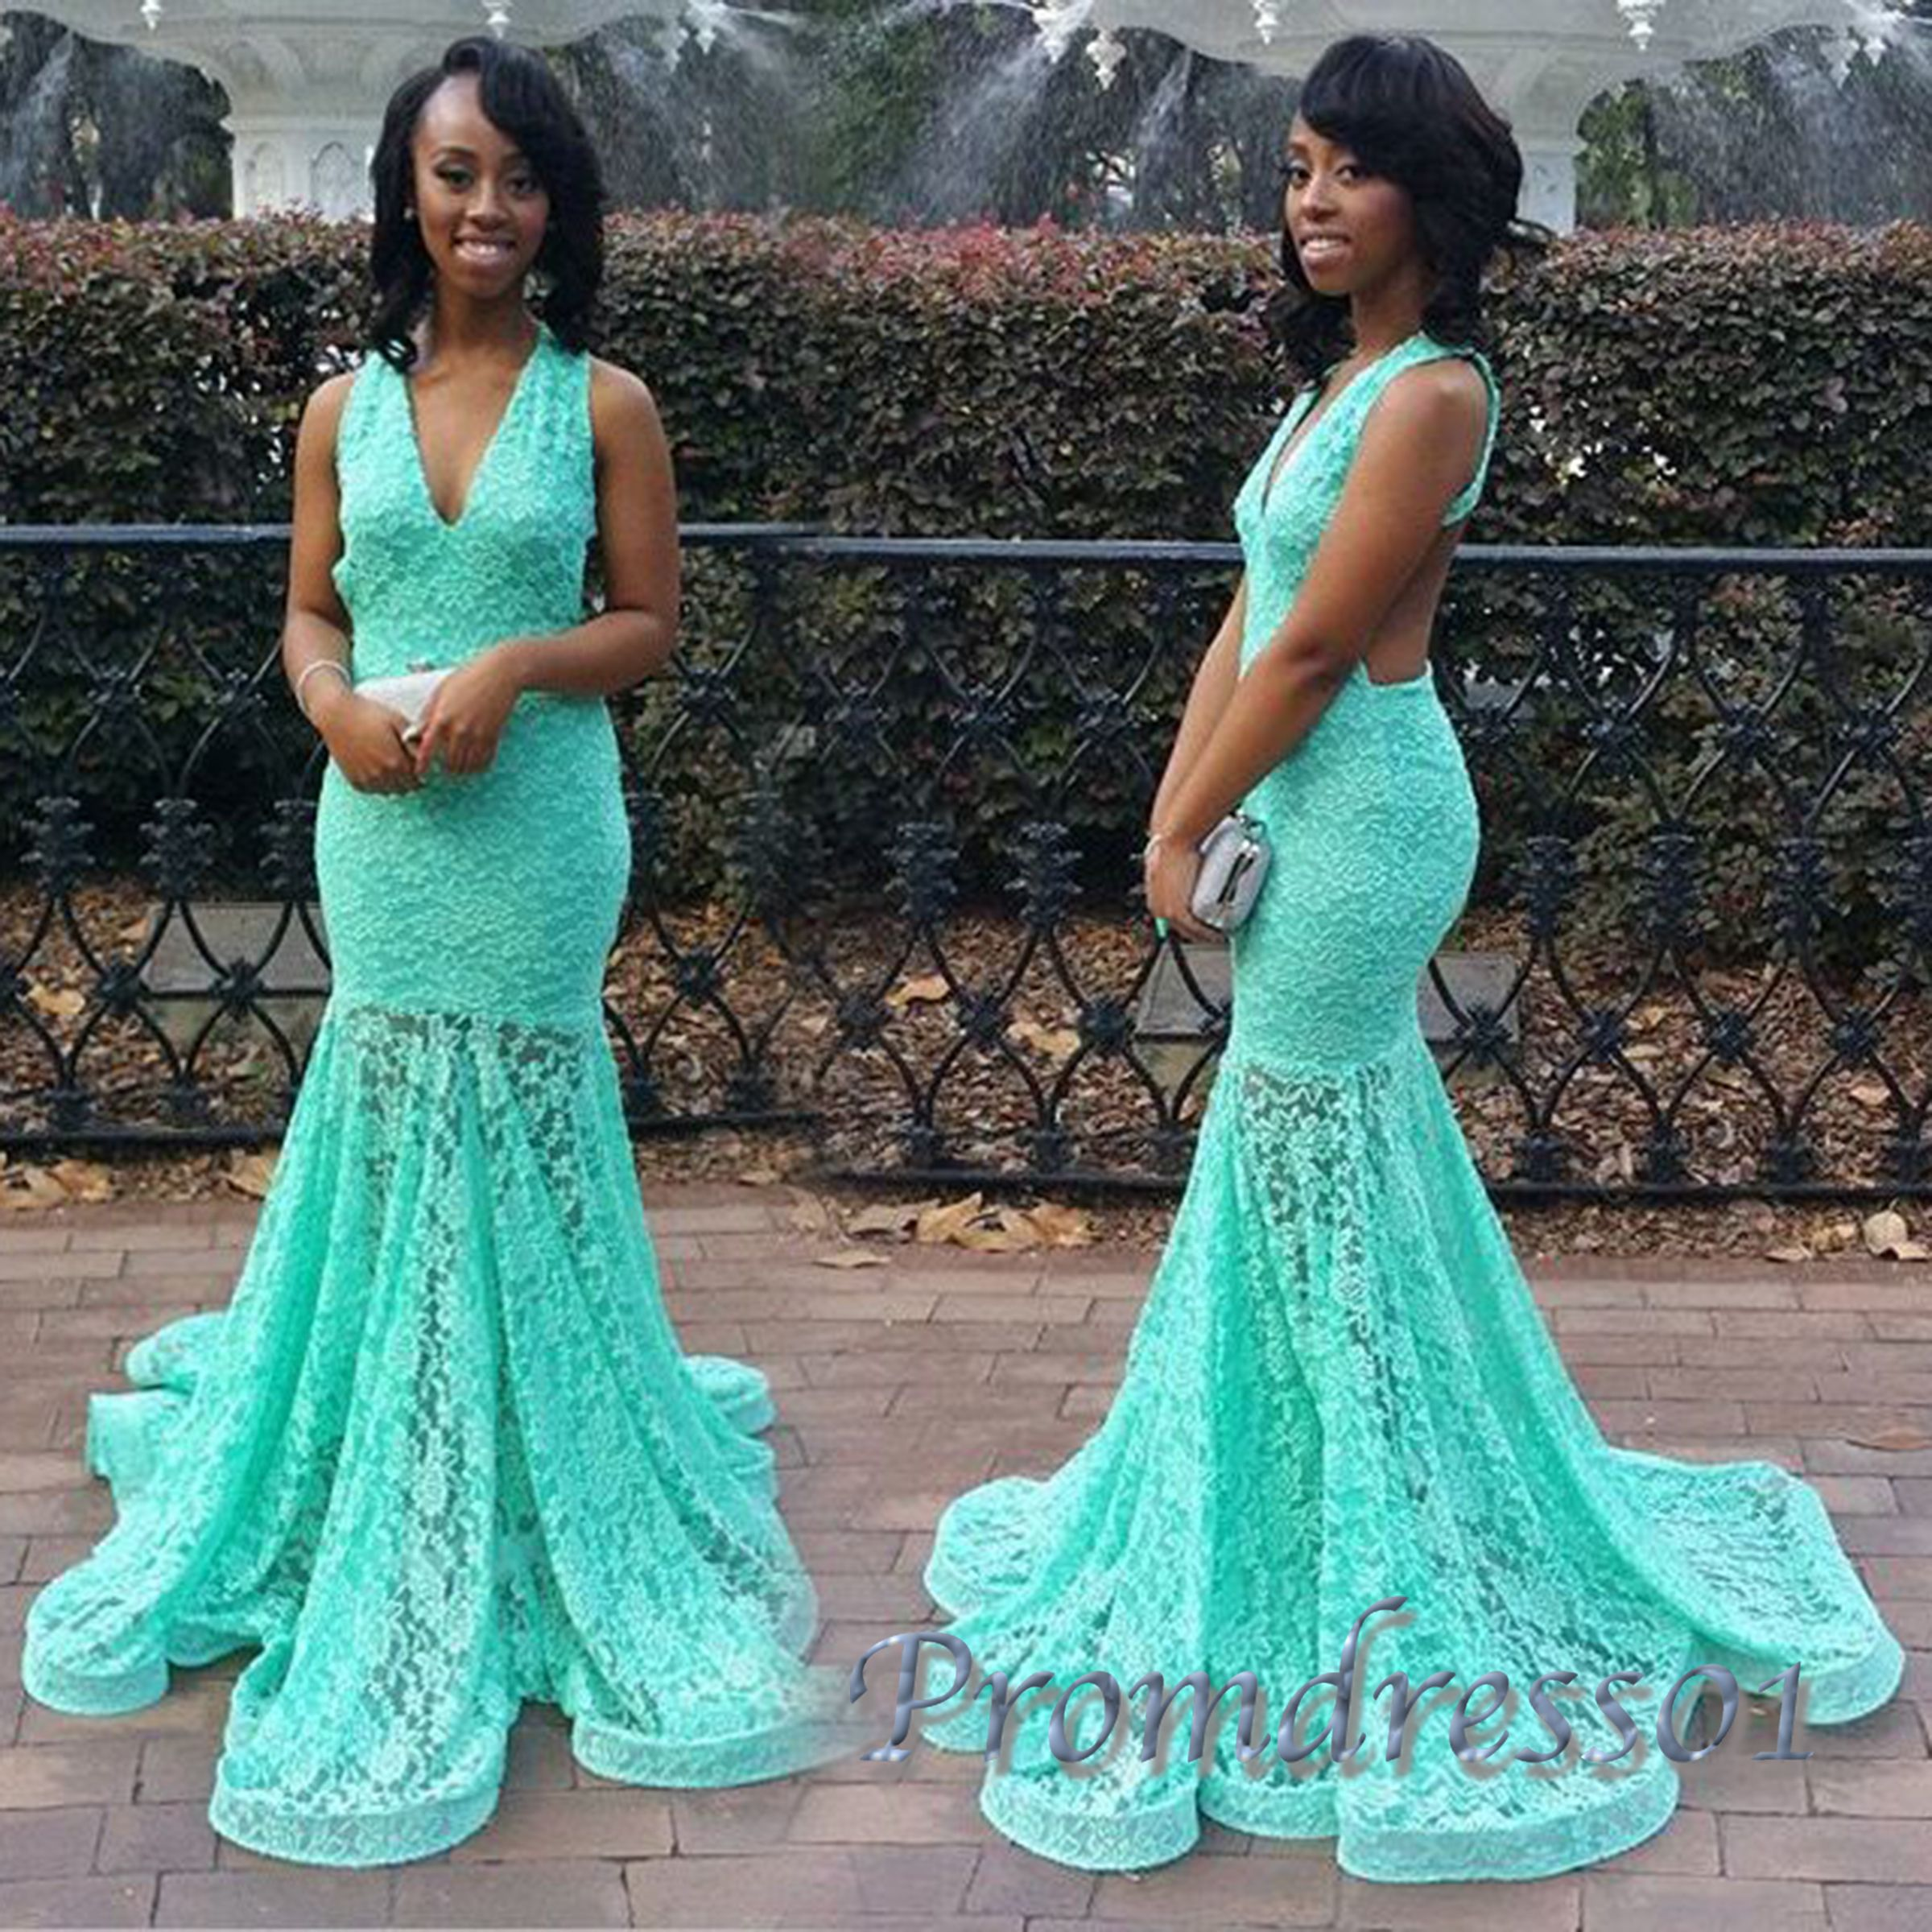 Cute vneck turquoise lace mermaid prom dress long evening dress